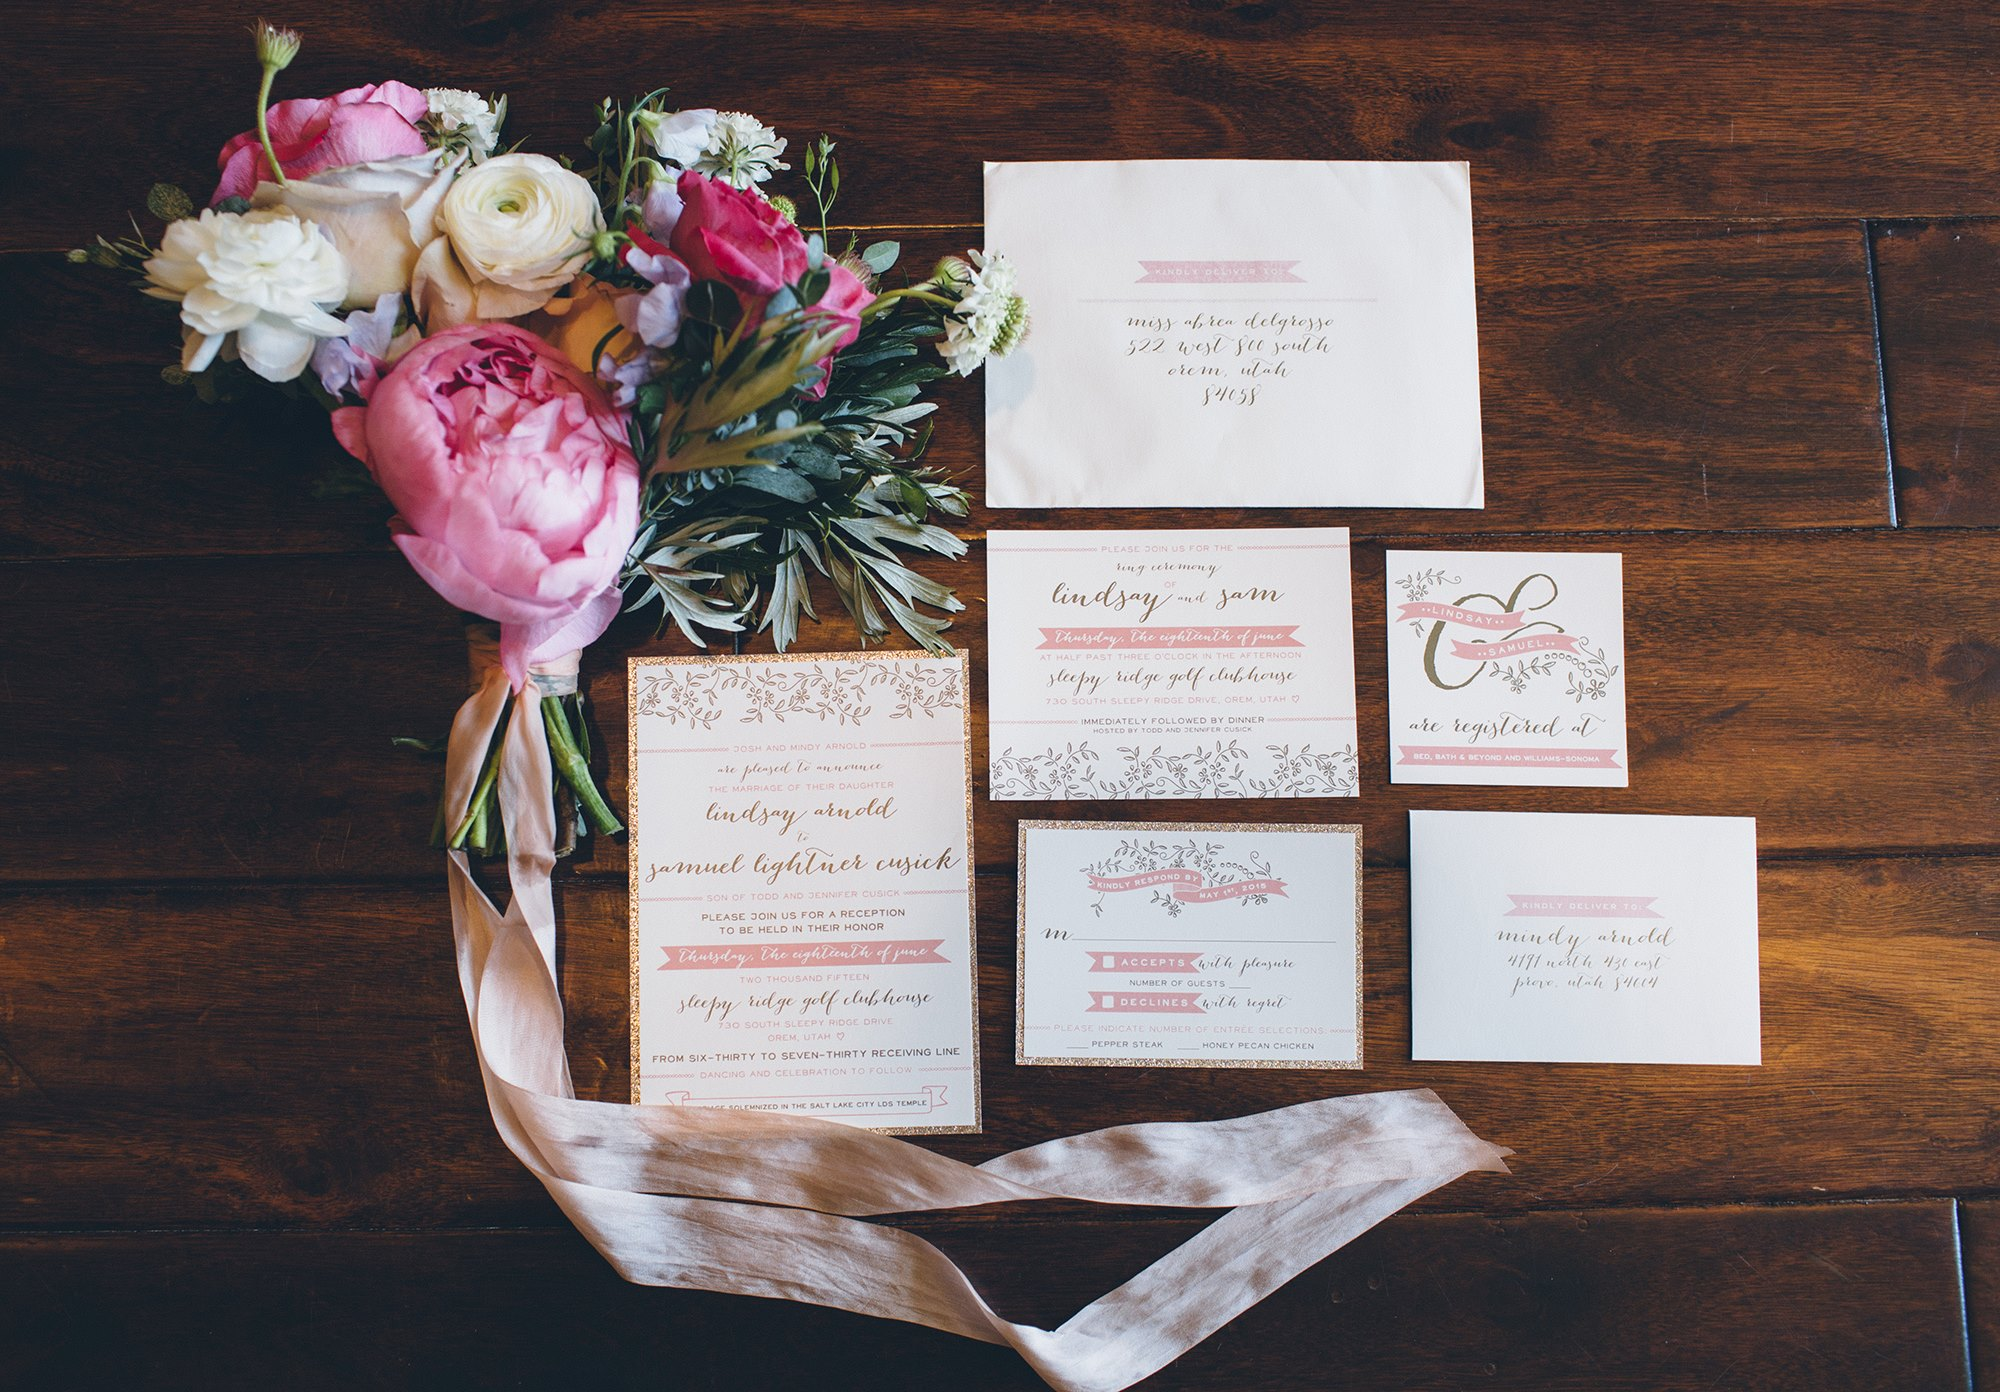 pink and white wedding invitation suite with pink, white and green bridal bouquet